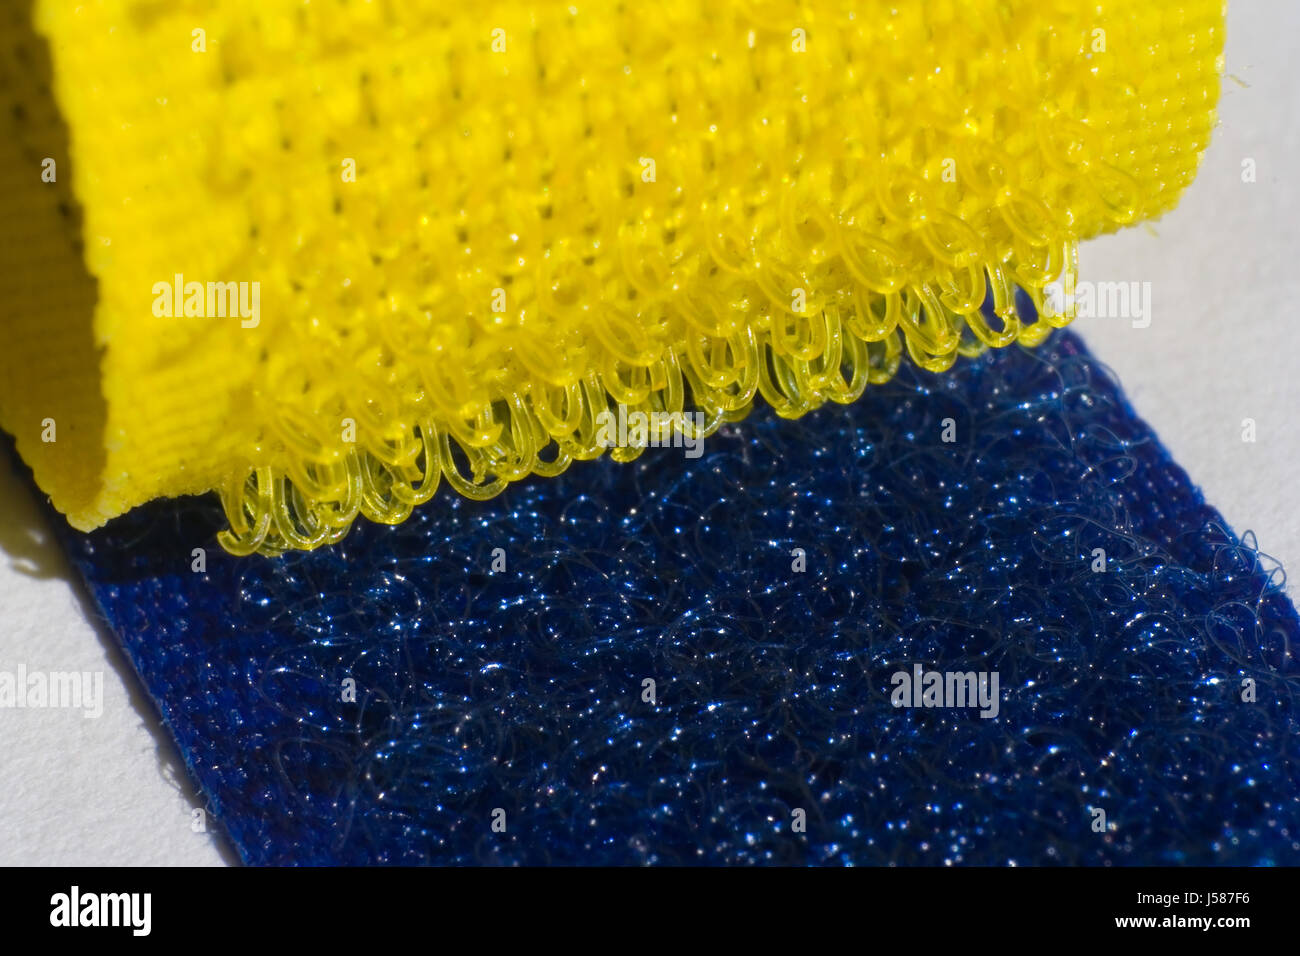 blue fortification velcro fastener outfit yellow clothes clothing 165 - Stock Image